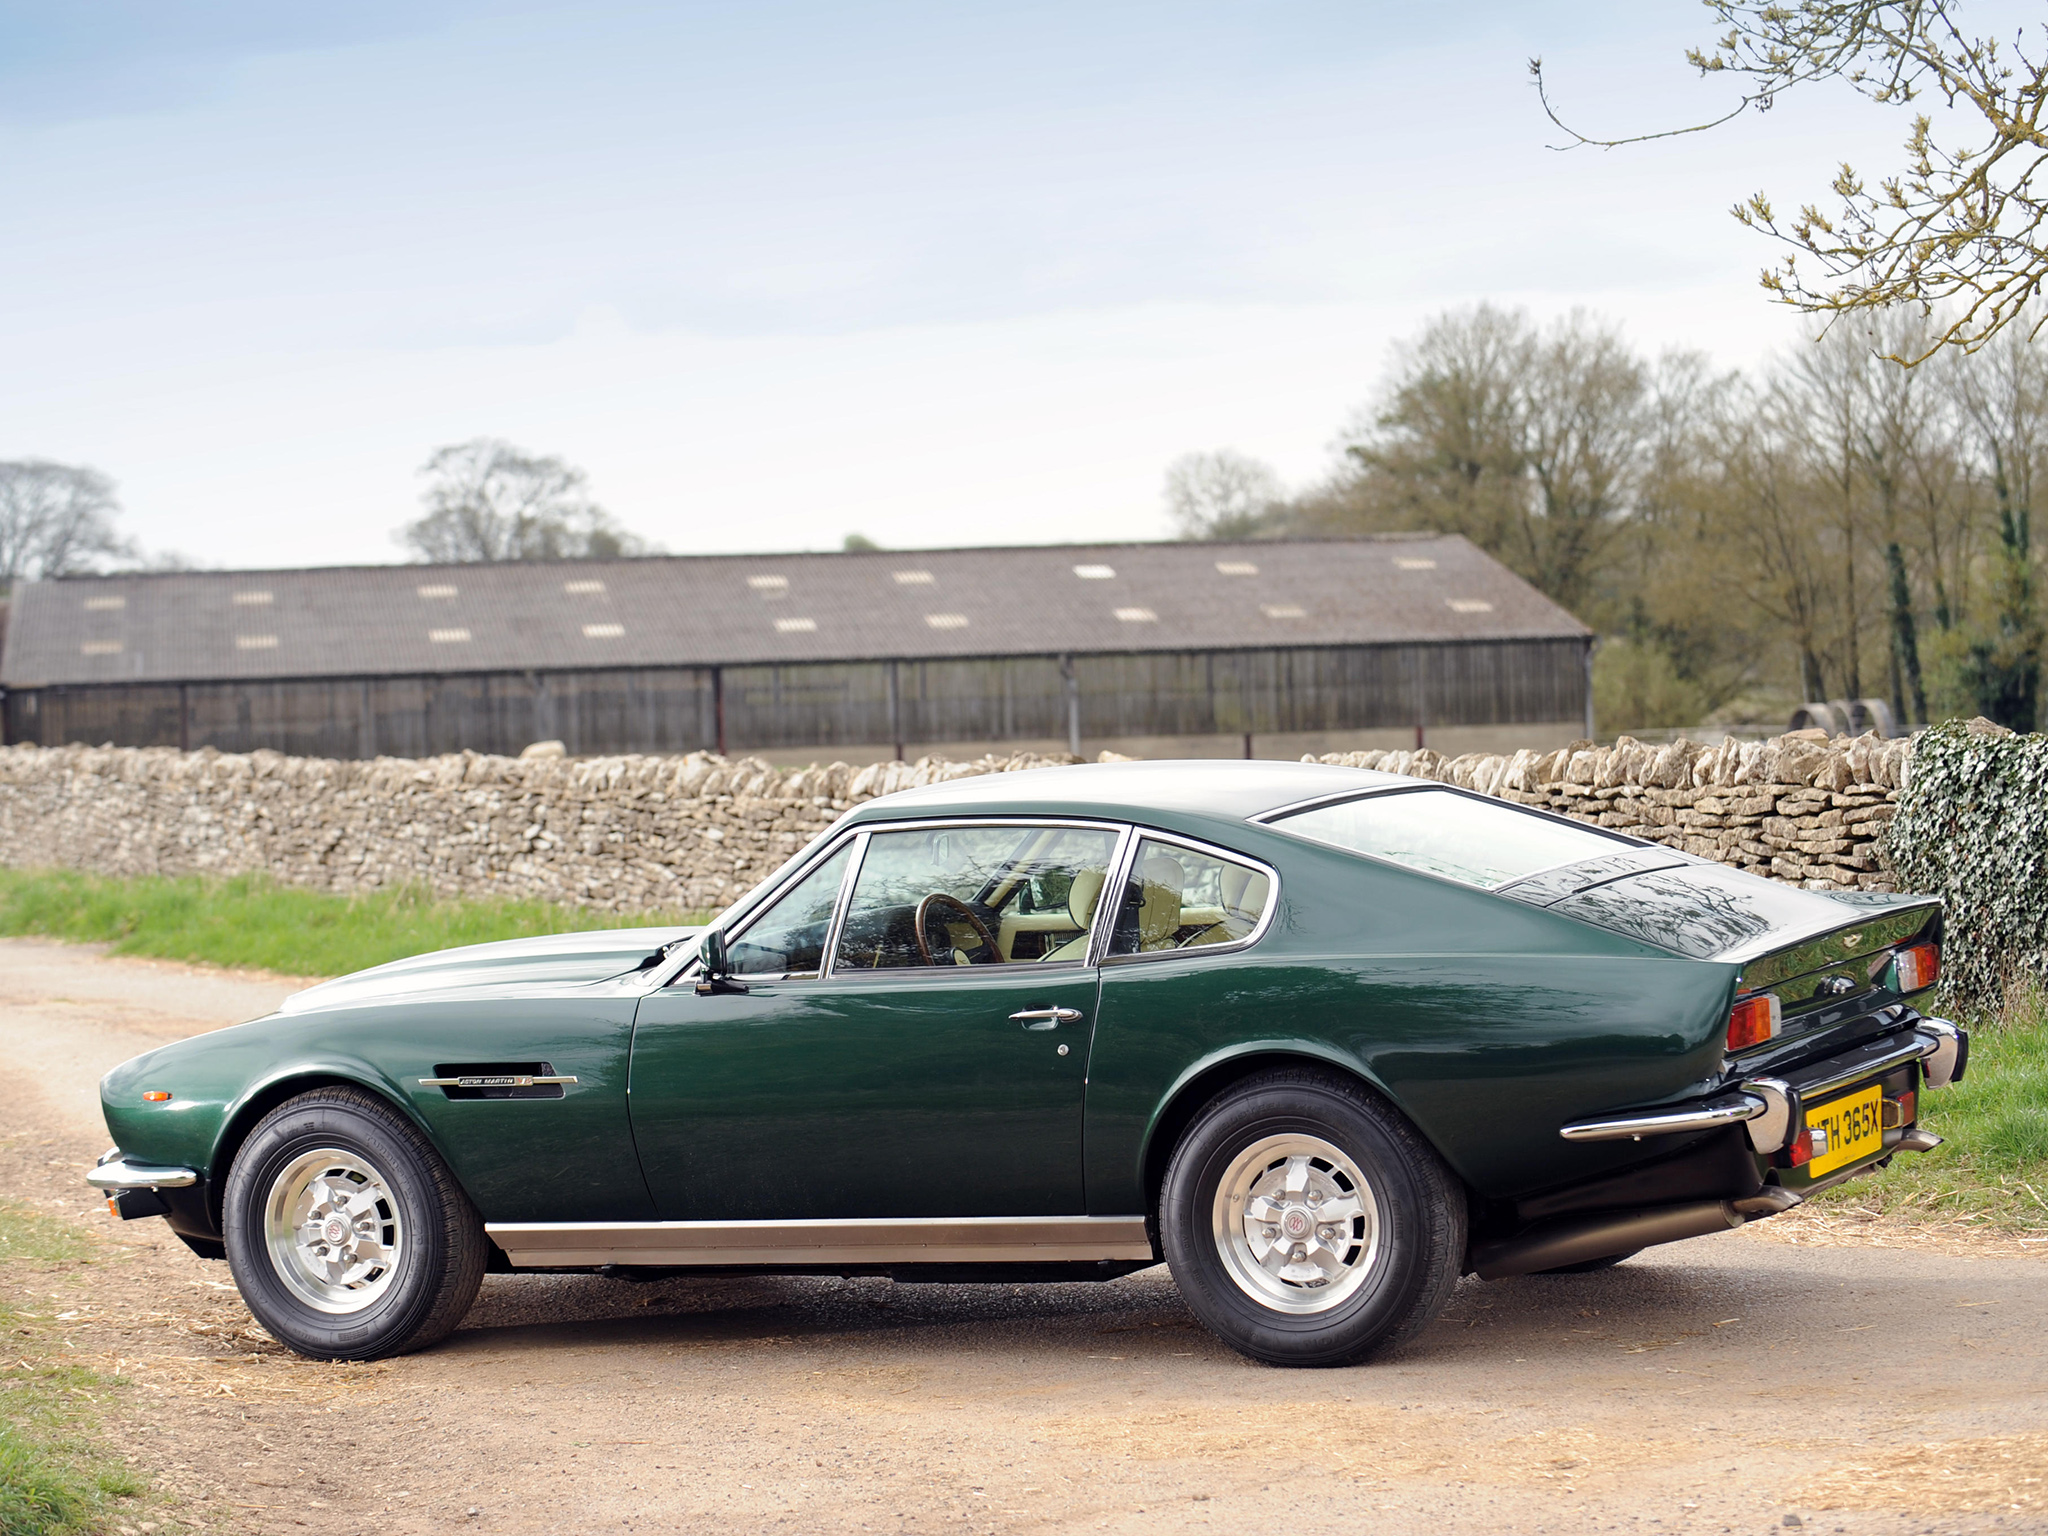 1977 Aston Martin V8 Vantage Uk Spec Muscle Supercar V 8 N Wallpaper 2048x1536 149159 Wallpaperup